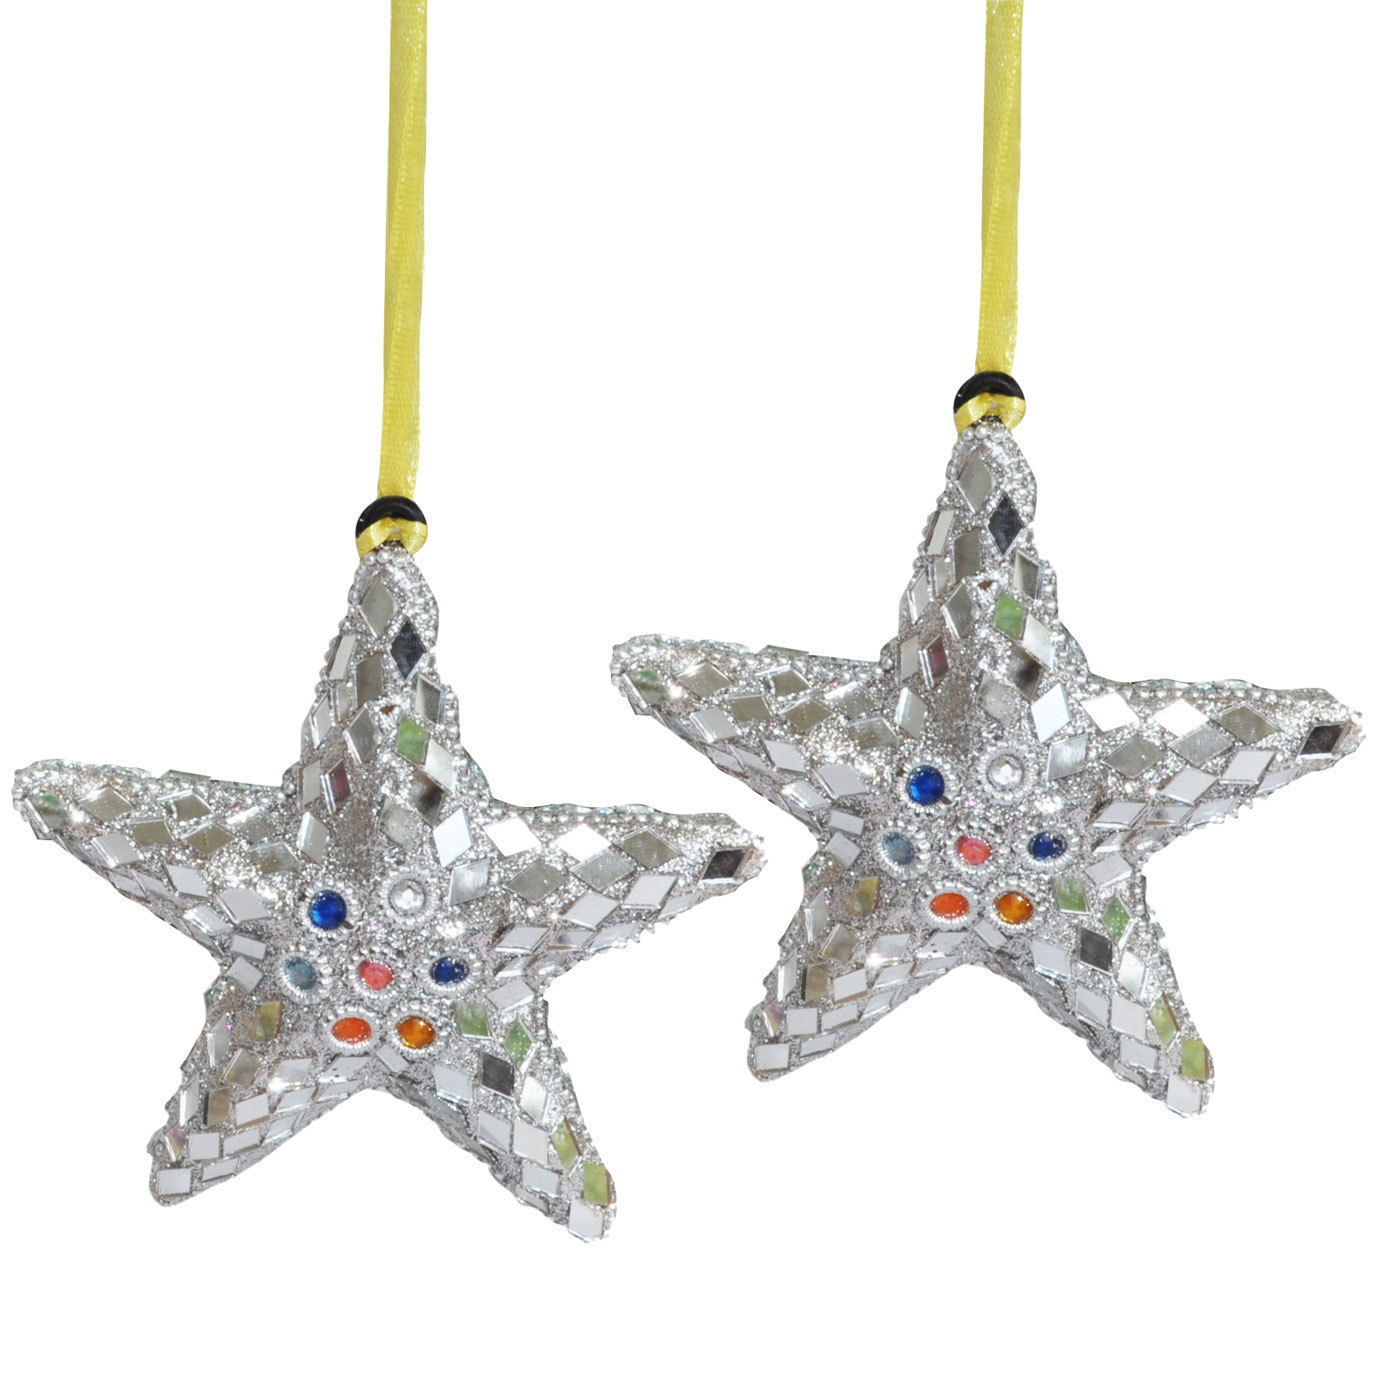 Set of 2, Silver Decorations Star Shape Hanging Christmas ...